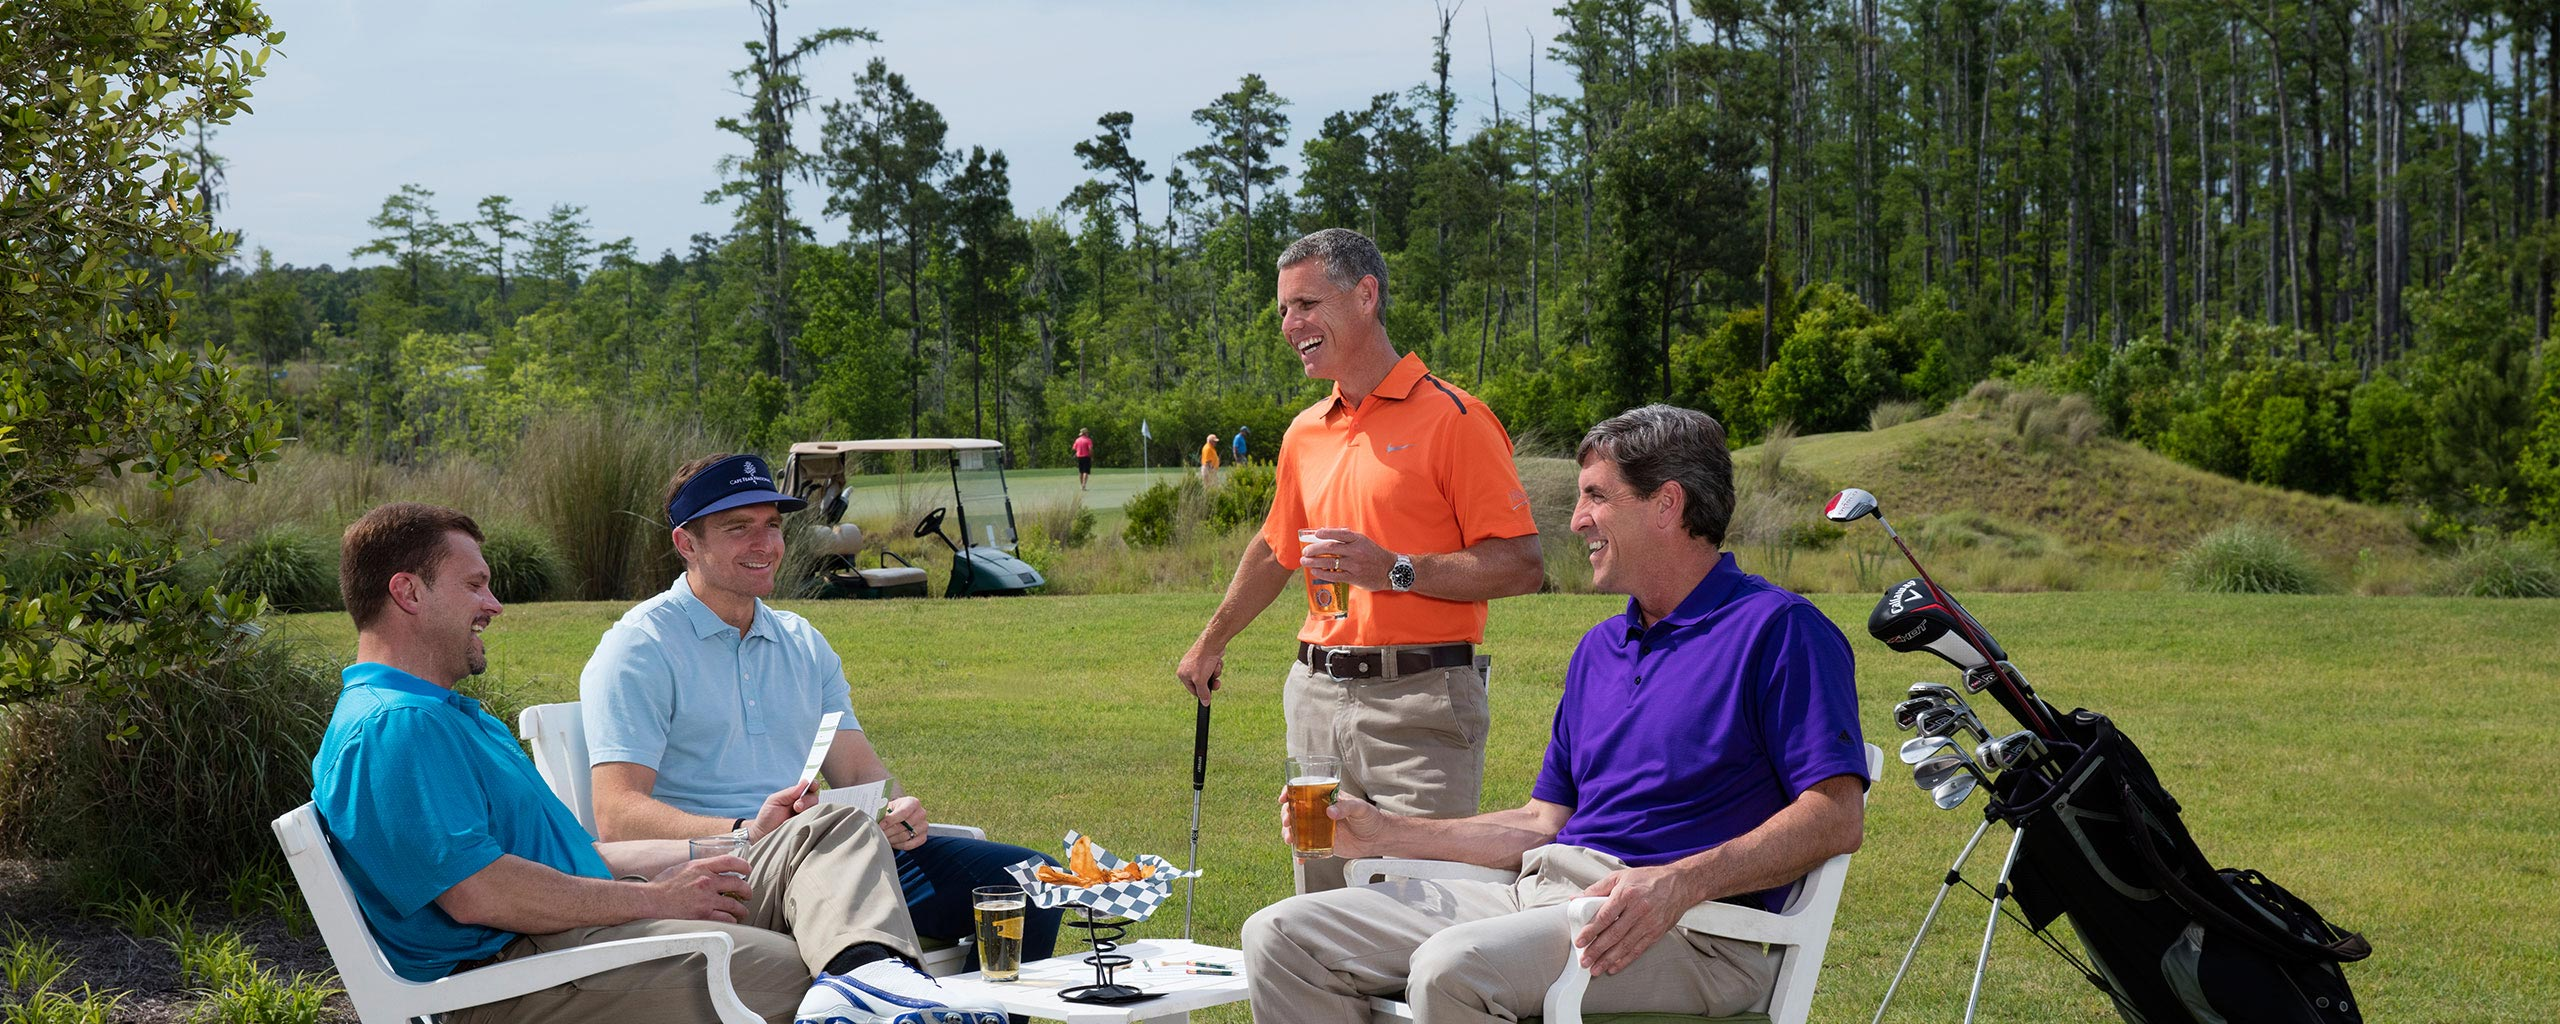 Cape Fear National Golfers Enjoying refreshments after their tee time